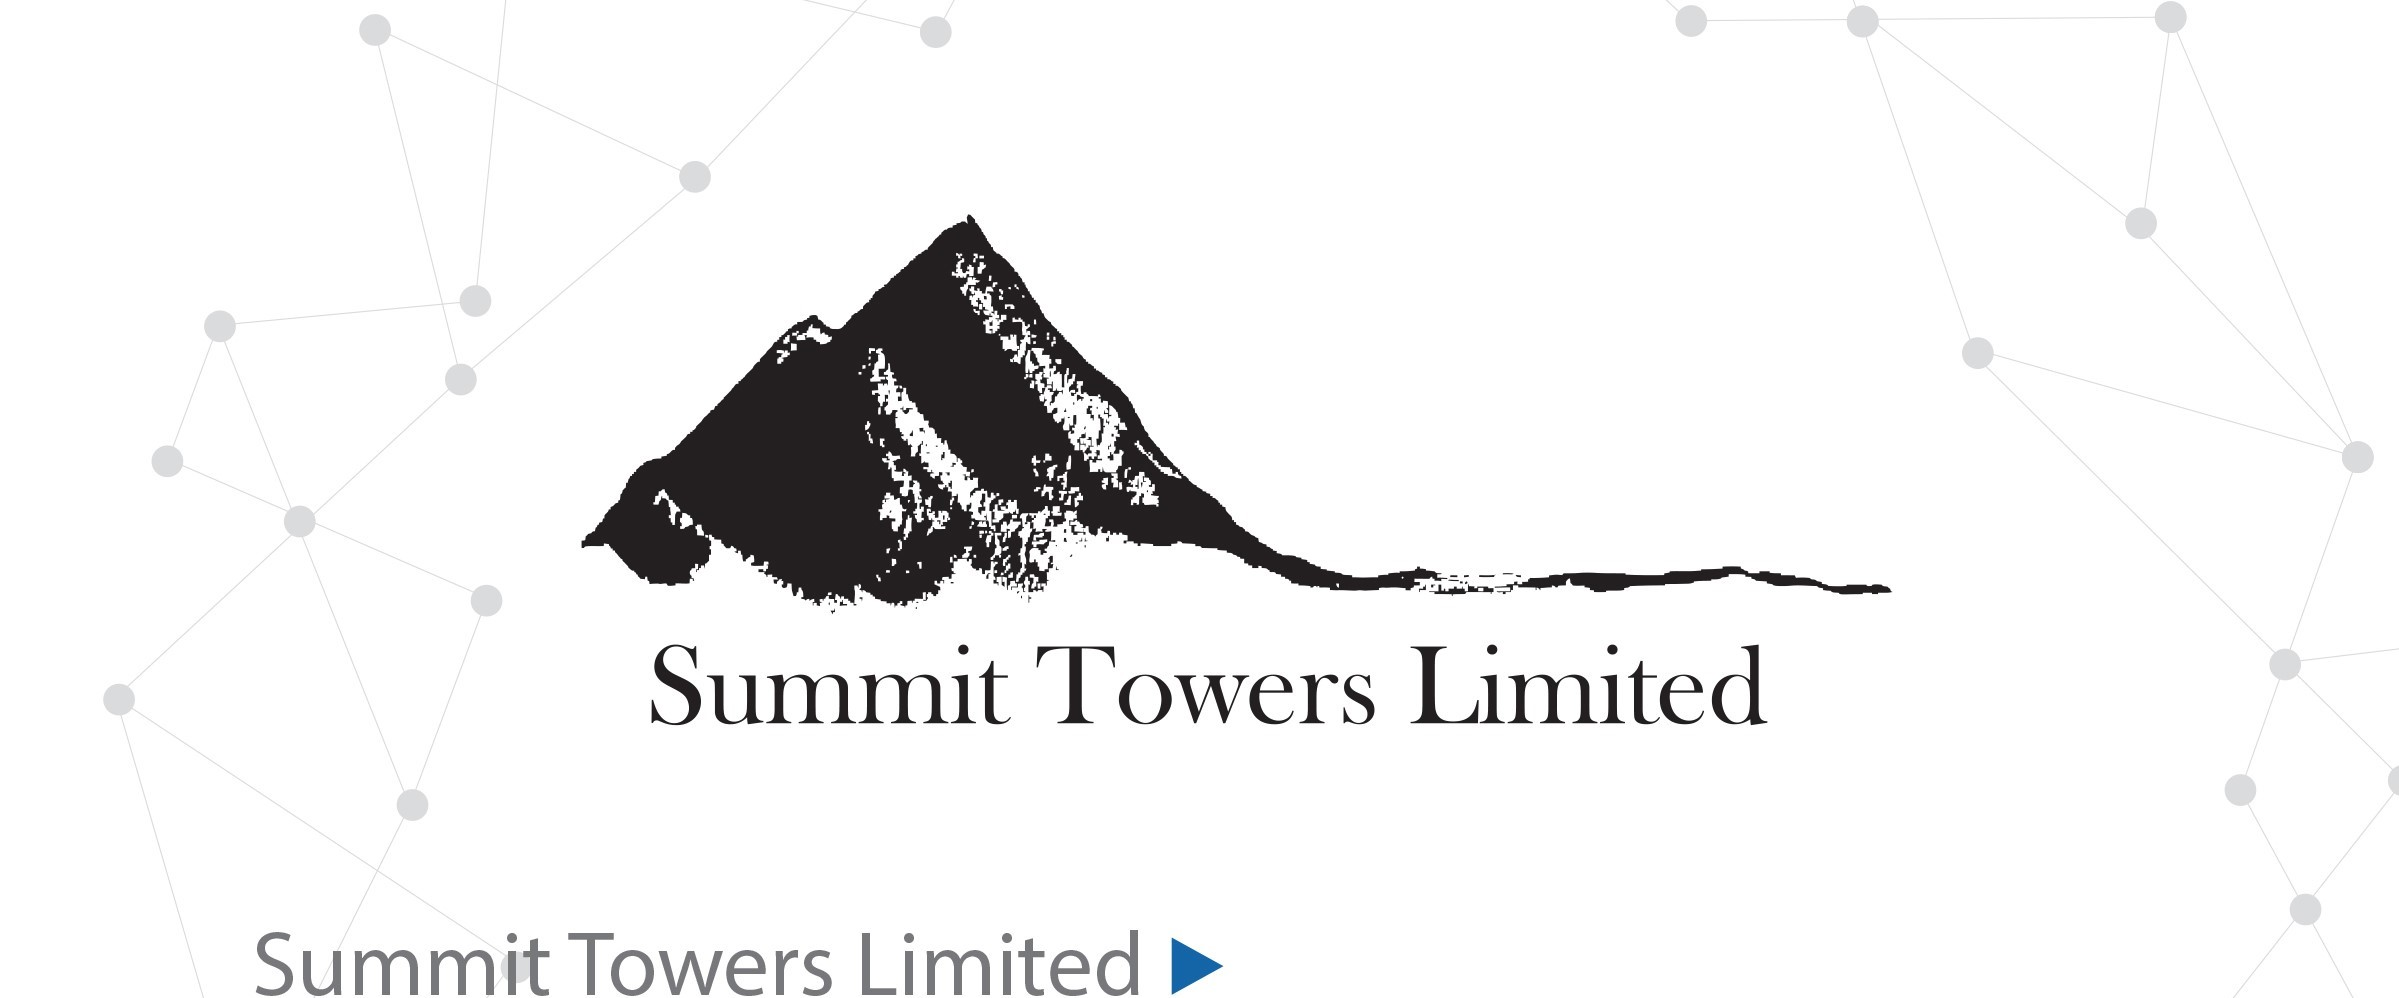 Summit Towers Limited